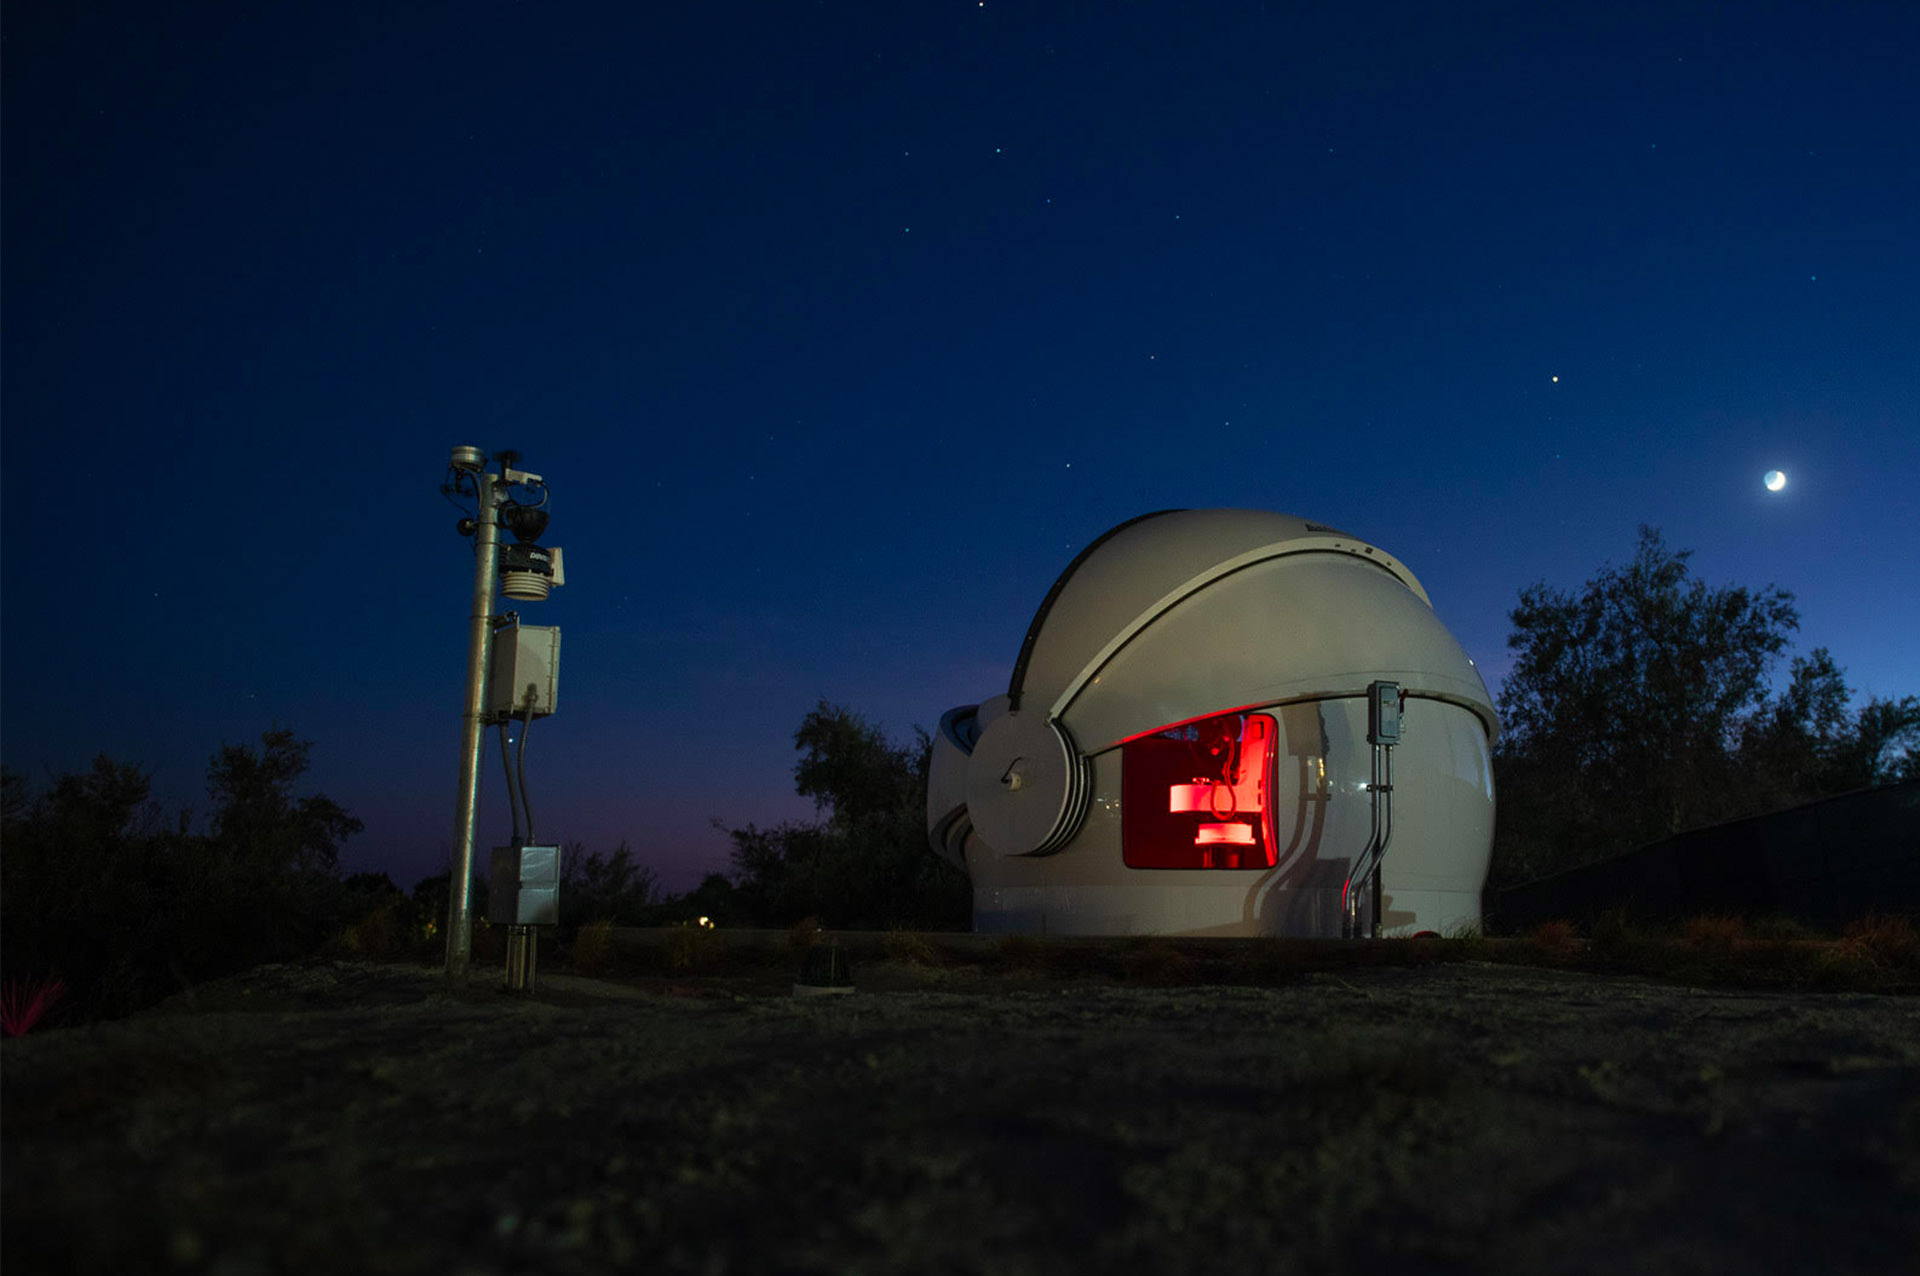 With the Nieves Observatory, Soka Sets Its Eyes on the Sky